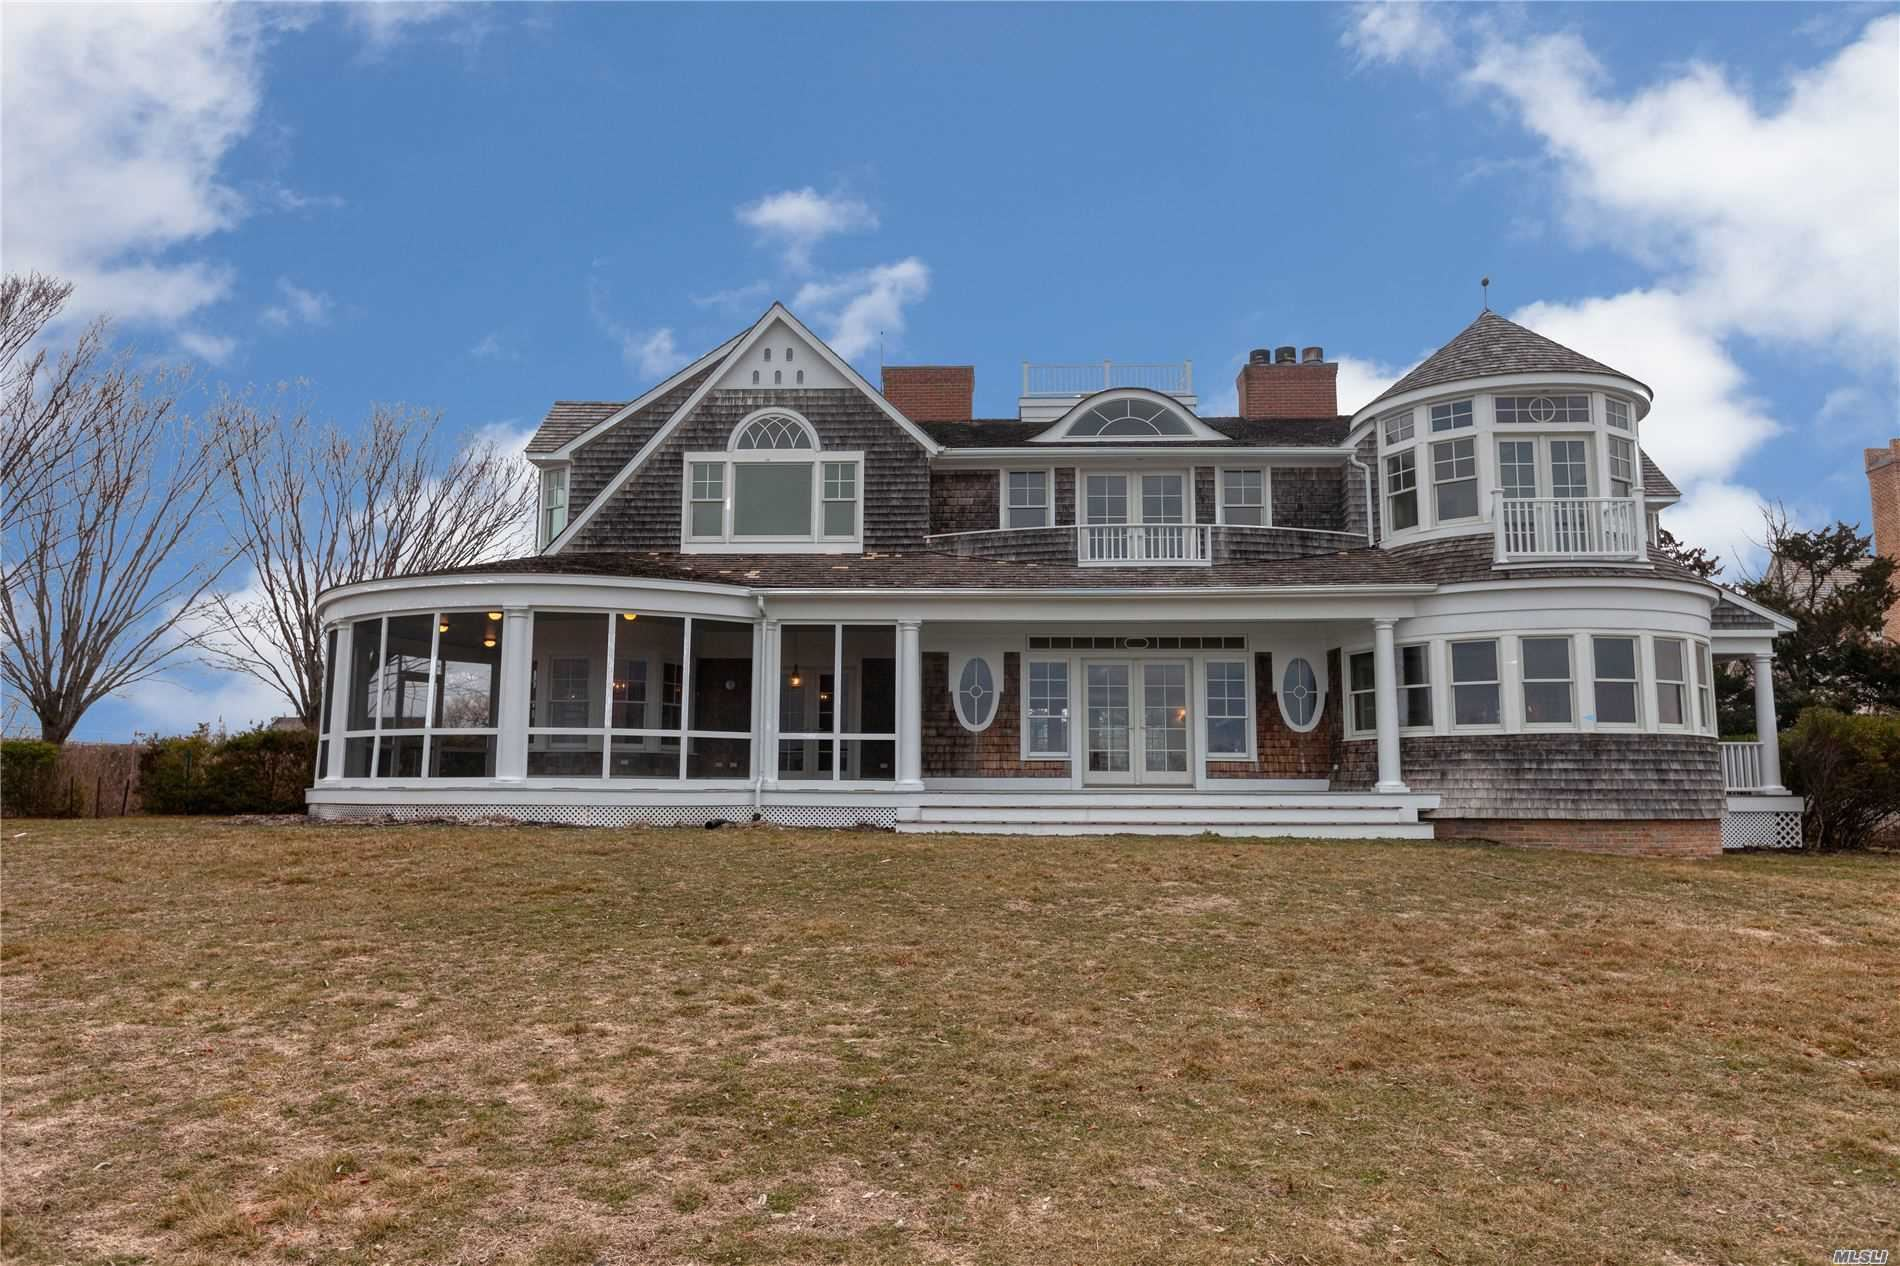 33 Ogden Lane, Quogue, NY 11959 - MLS#: 3192863